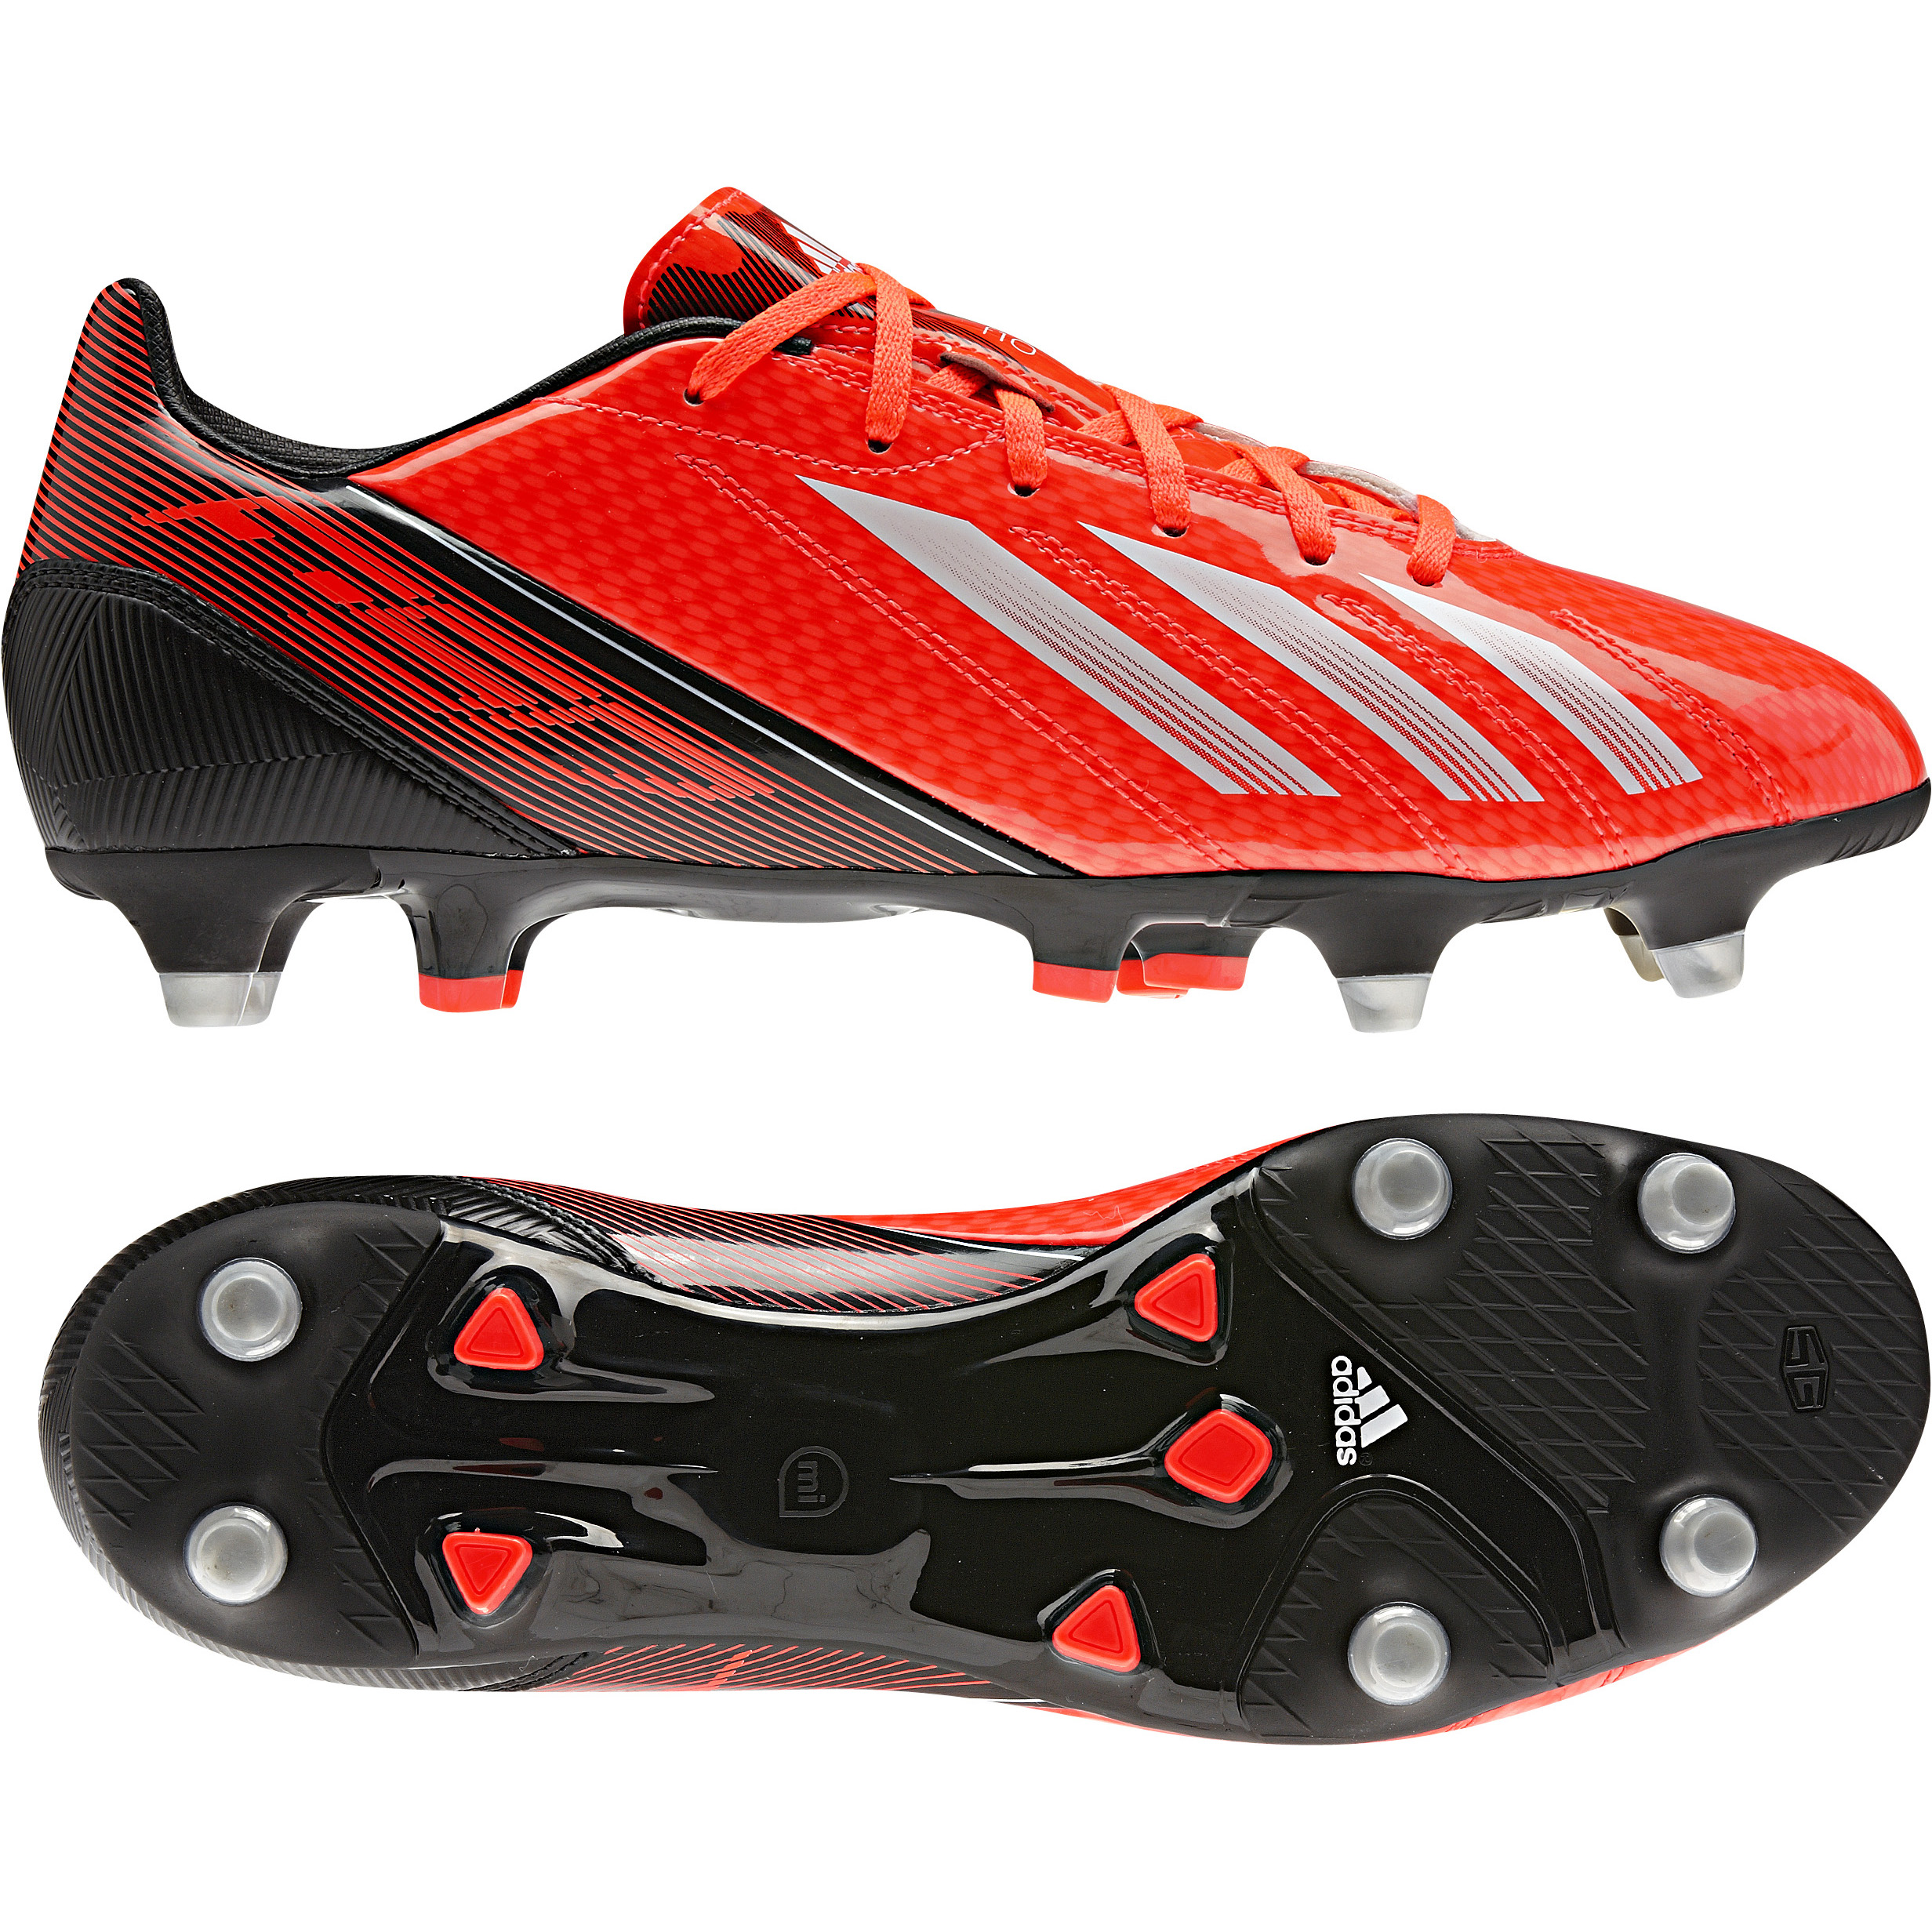 Adidas F10 TRX Soft Ground Football Boots Red